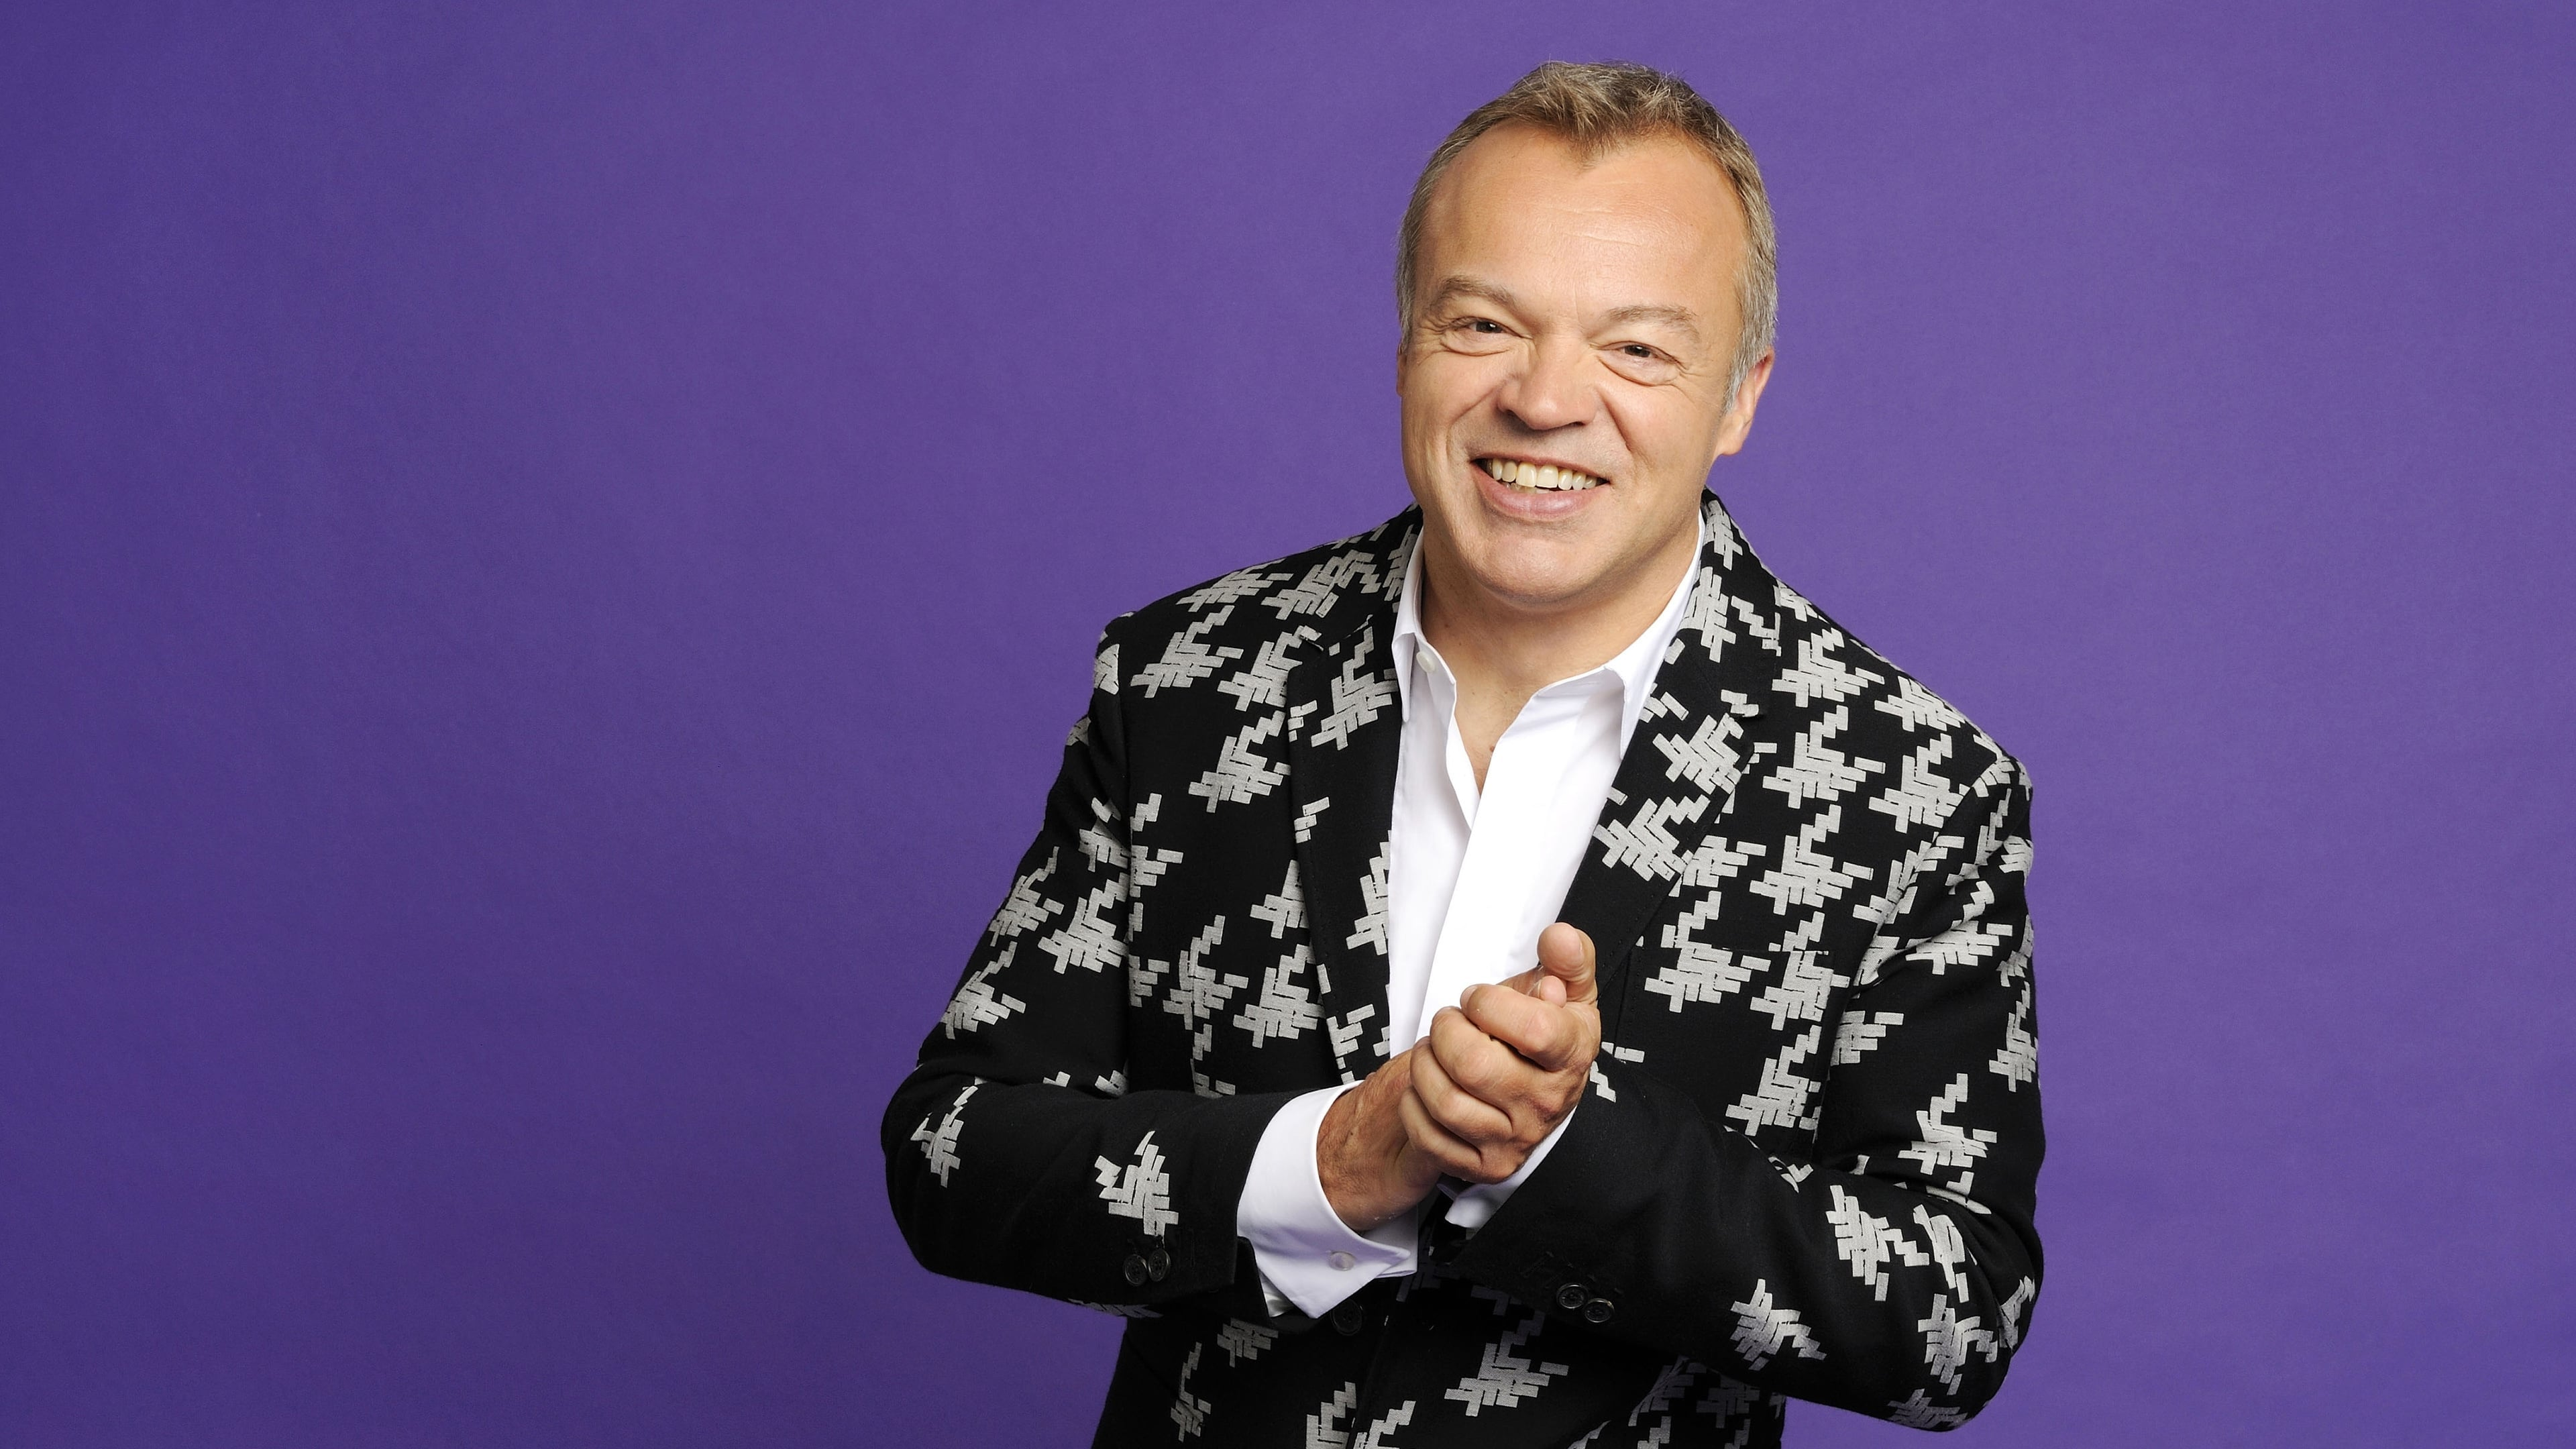 The Graham Norton Show - Season 18 Episode 18 : Julianne Moore, Rebel Wilson, Ant and Dec, Little Mix